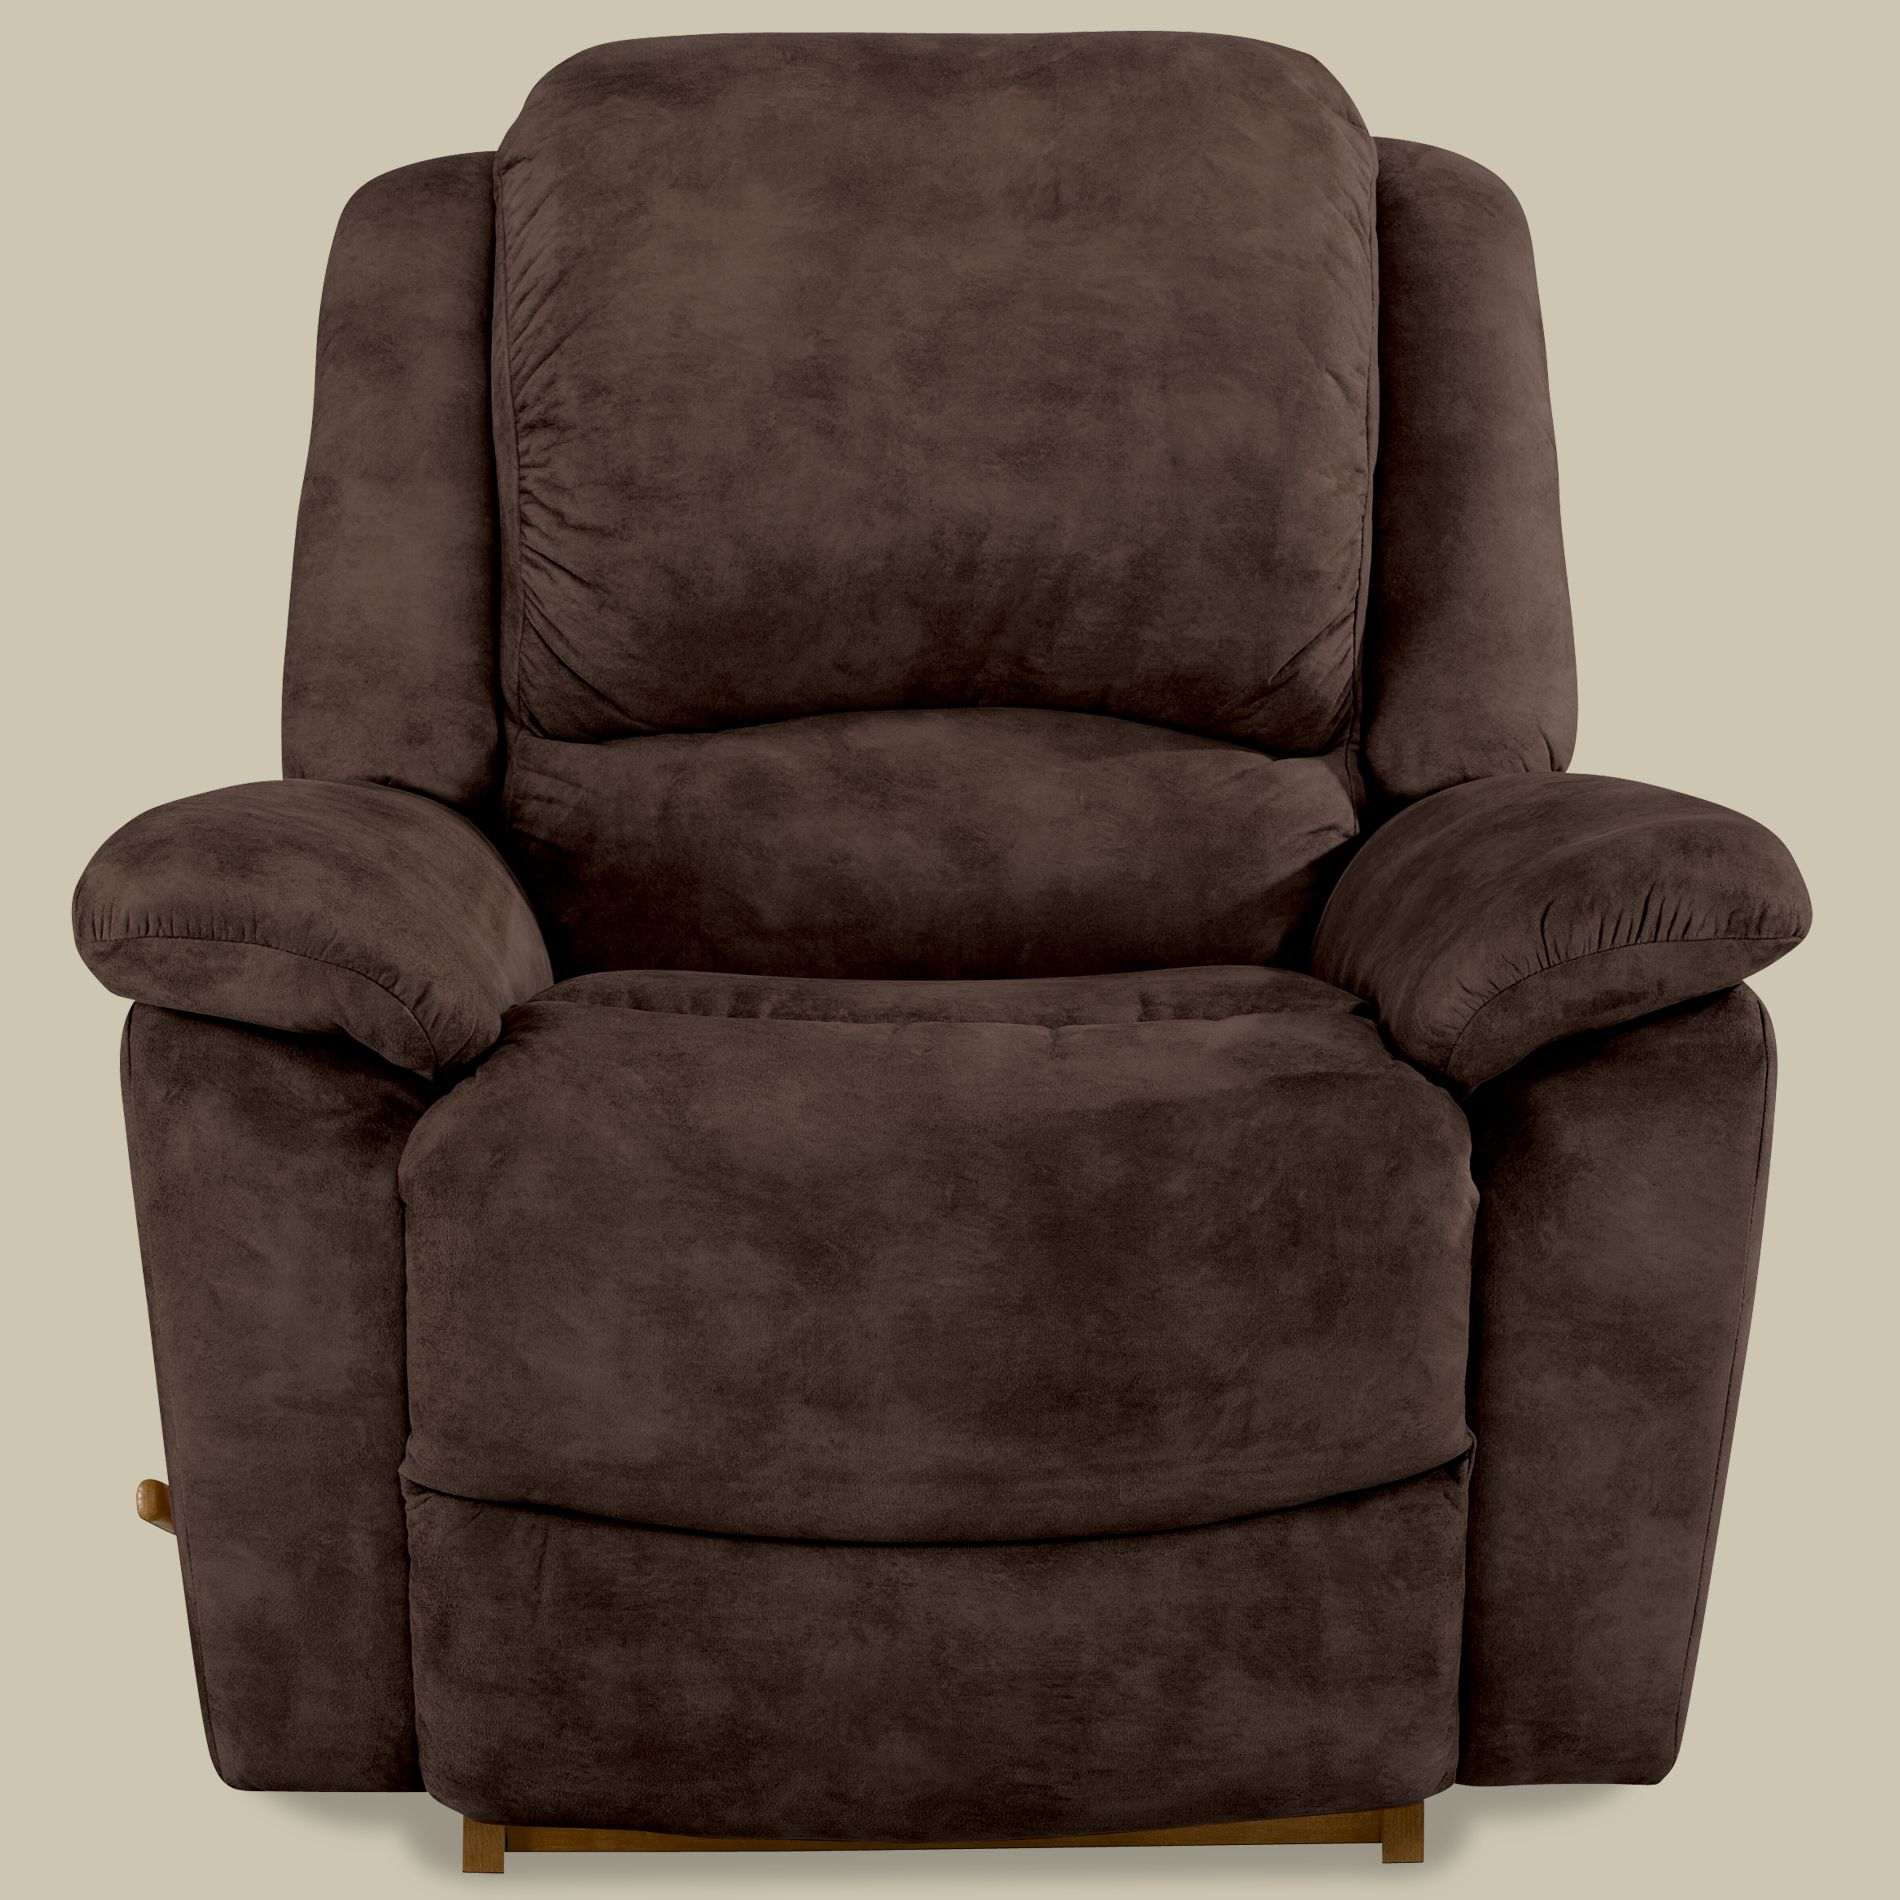 La-Z-Boy Hush Puppy Reclina-Rocker